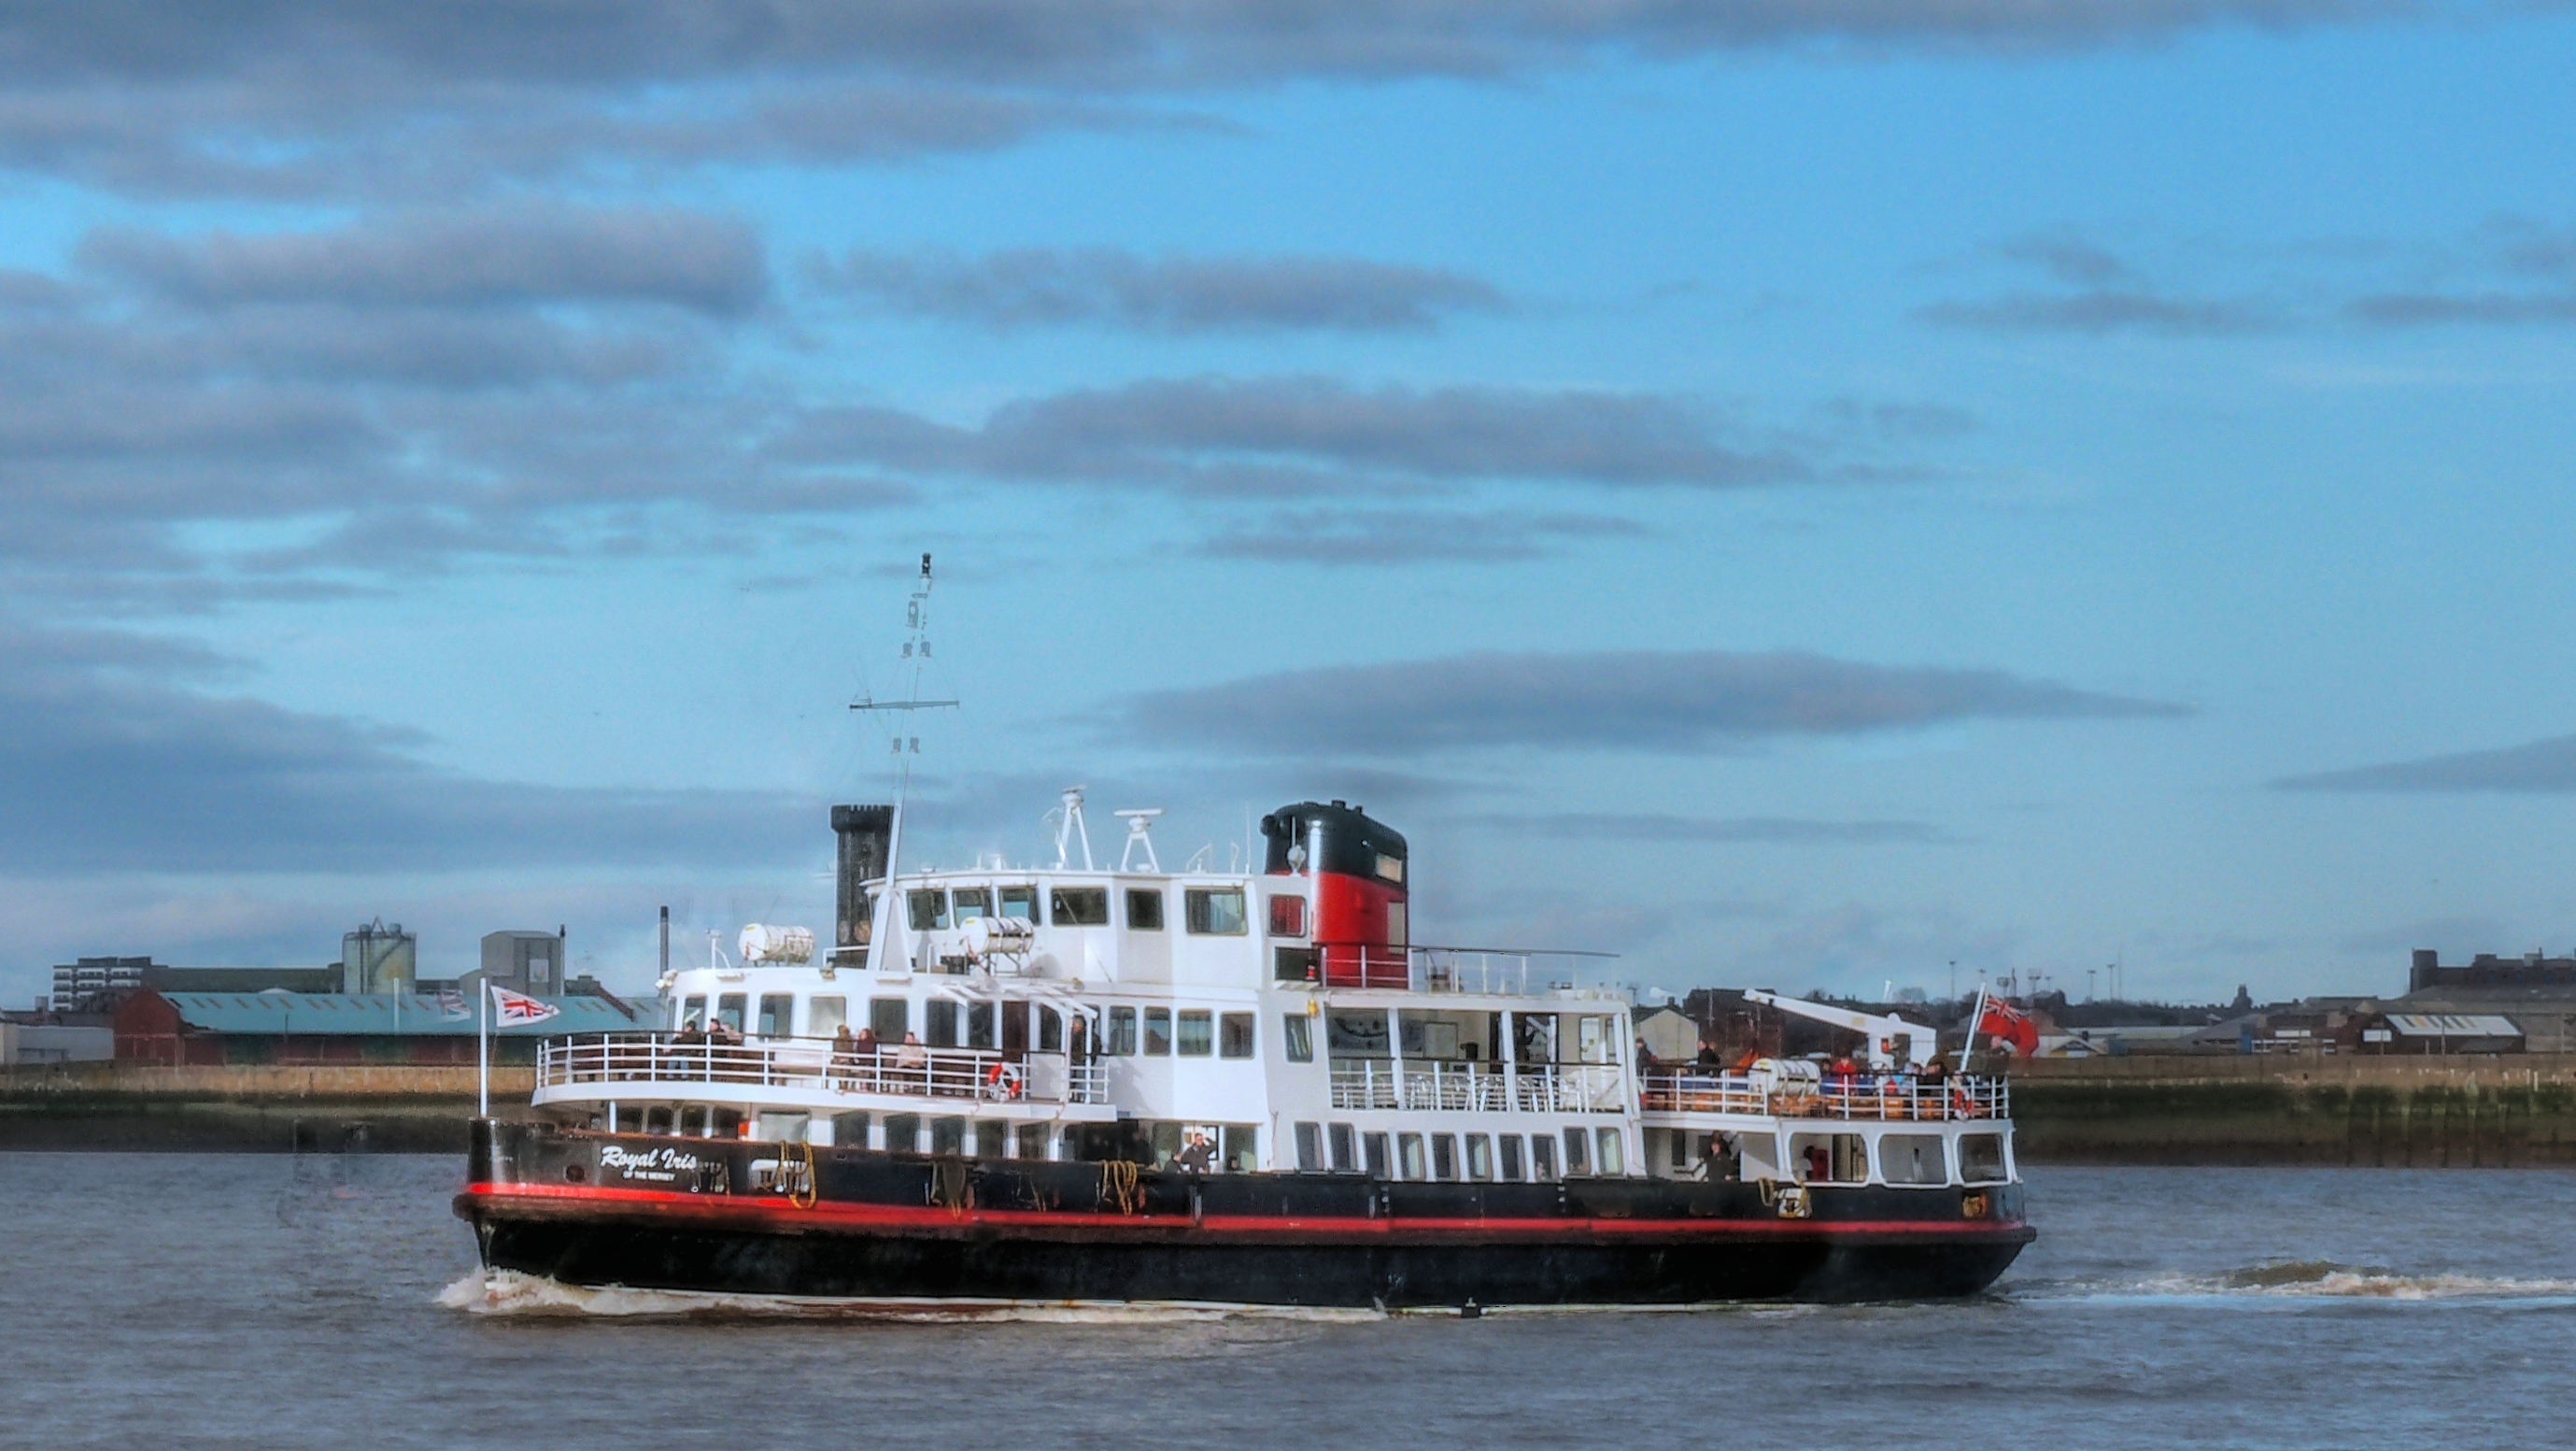 Mersey Ferry Stock Photos & Mersey Ferry Stock Images - Alamy